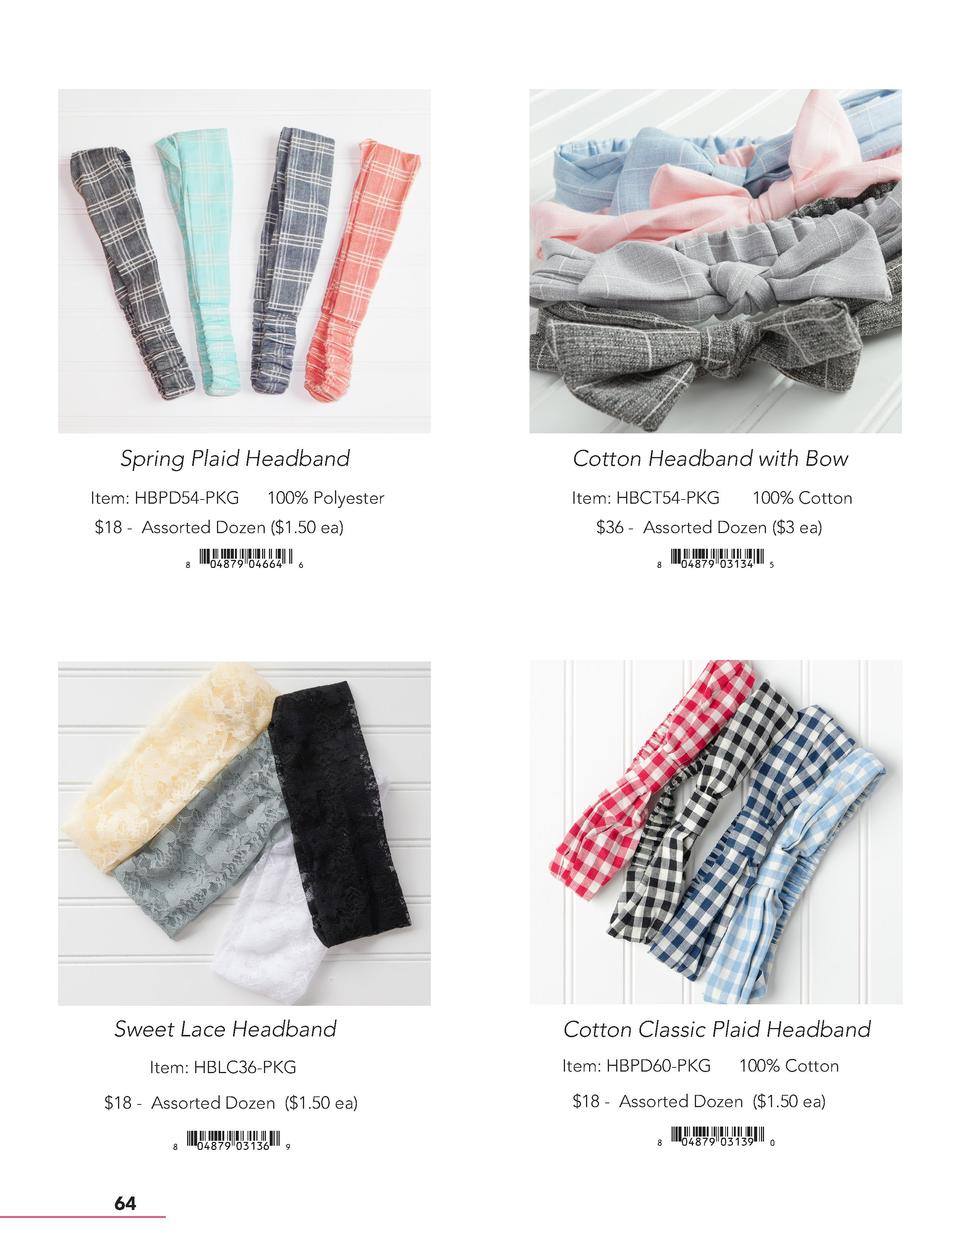 Spring Plaid Headband Item  HBPD54-PKG  100  Polyester   18 - Assorted Dozen   1.50 ea     xiAEIHJy04664qzZ  Sweet Lace He...